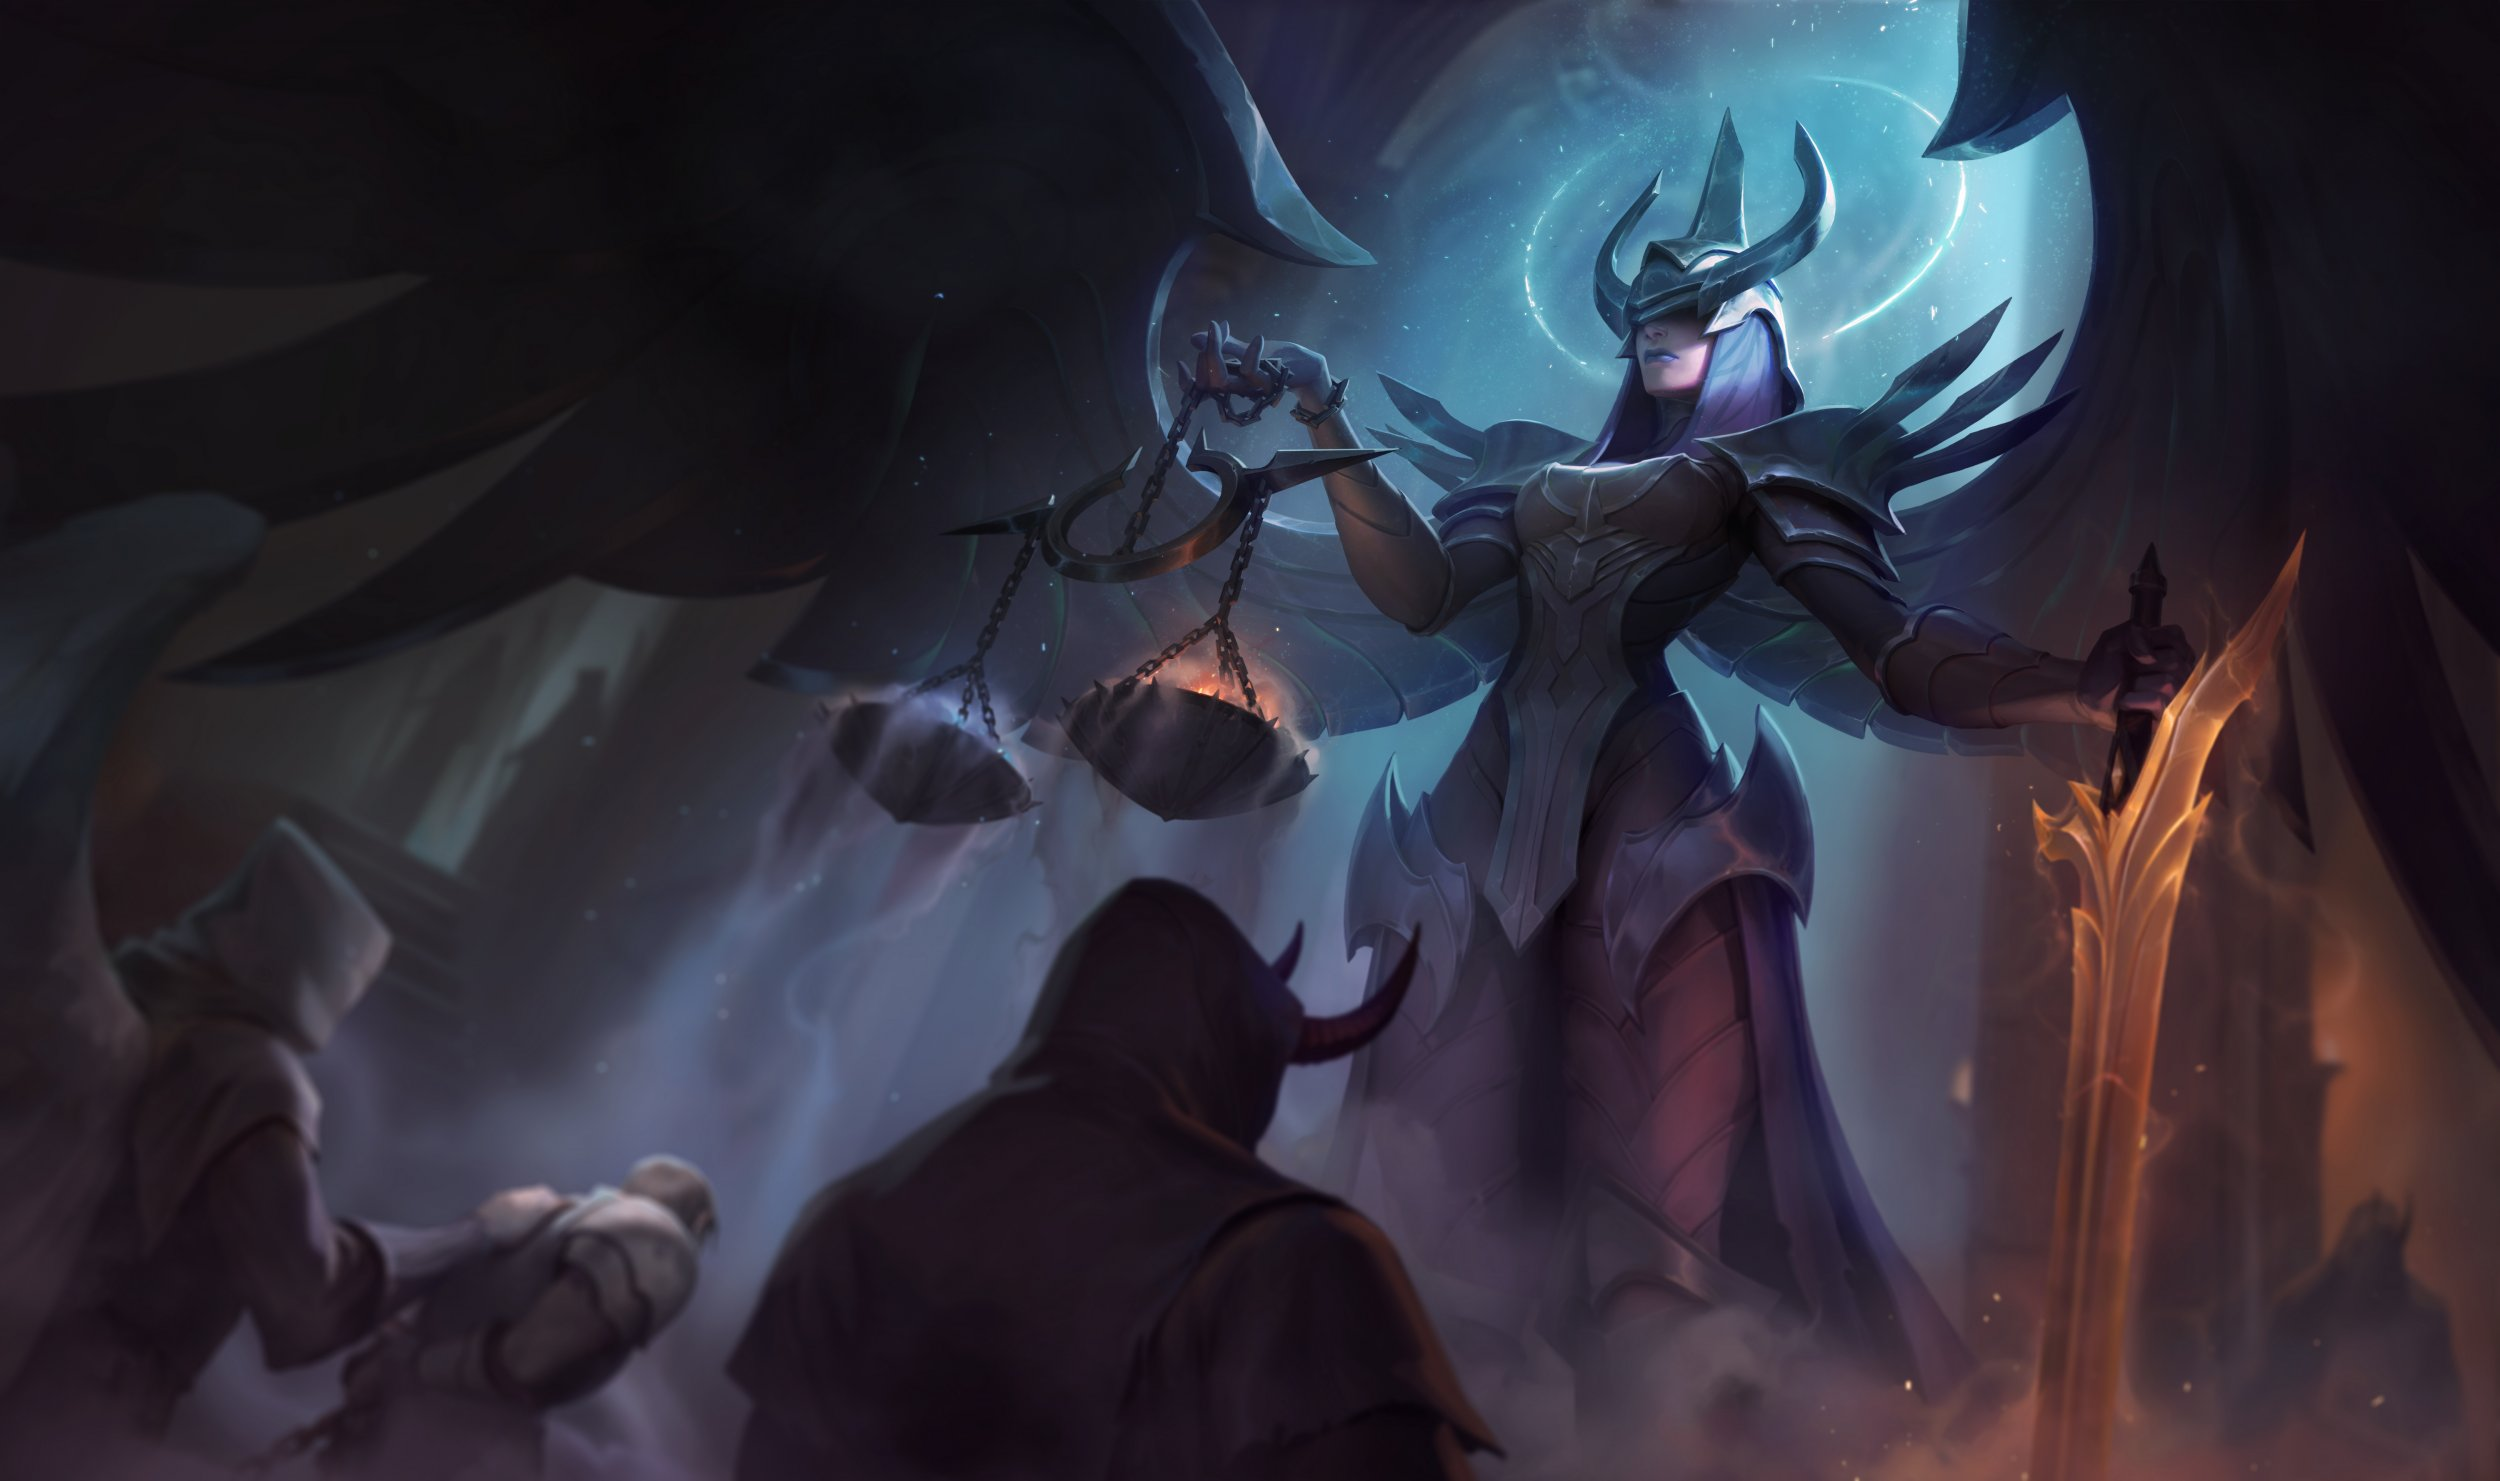 league of legends 9.4 patch notes karthus arurf nerf buff